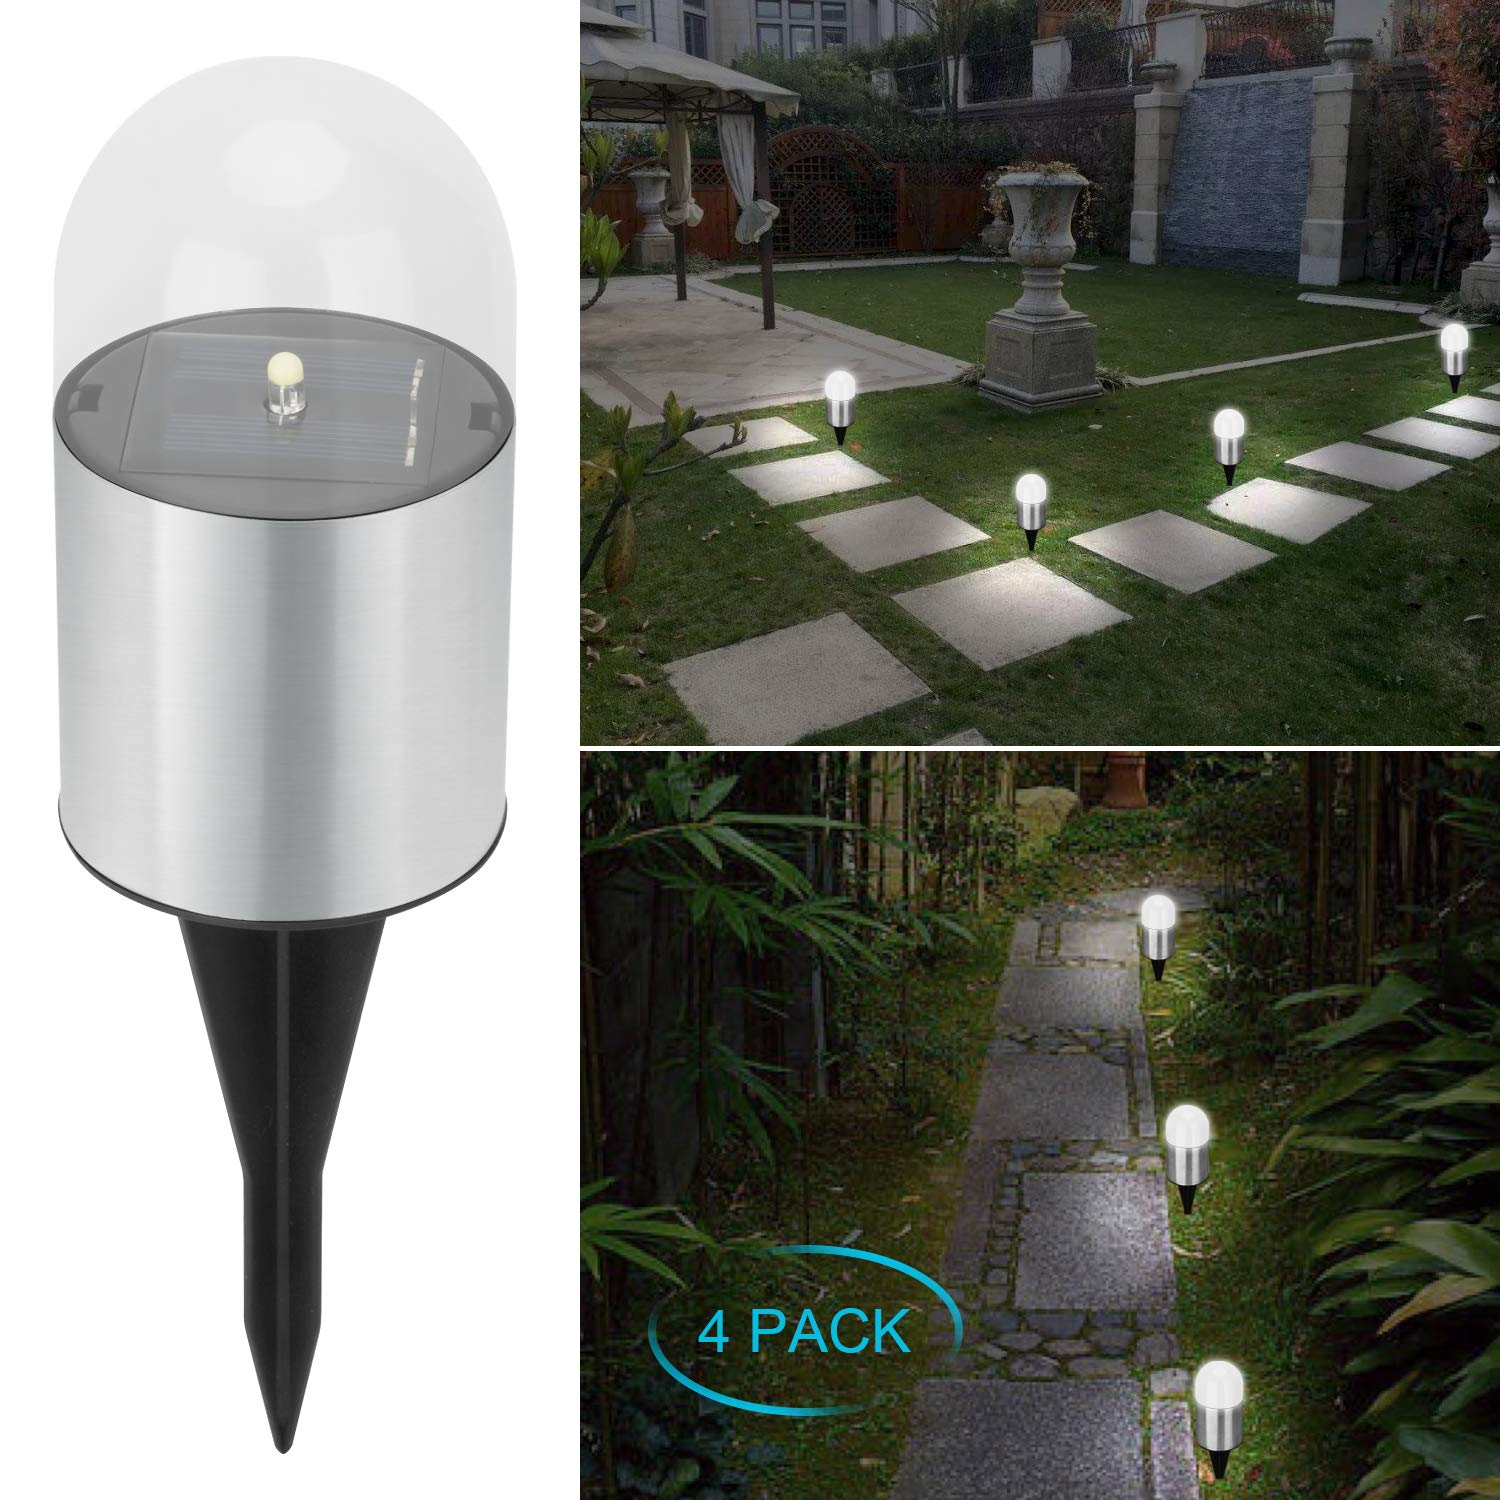 Adecorty Solar Garden lights - Bright Solar Pathway Light Outdoor Waterproof Solar Stake Light Auto On/Off Sun Powered Landscape Lighting for Yard Patio Lawn Path Walkway Driveway (Cool White, 4 Pack) by Adecorty